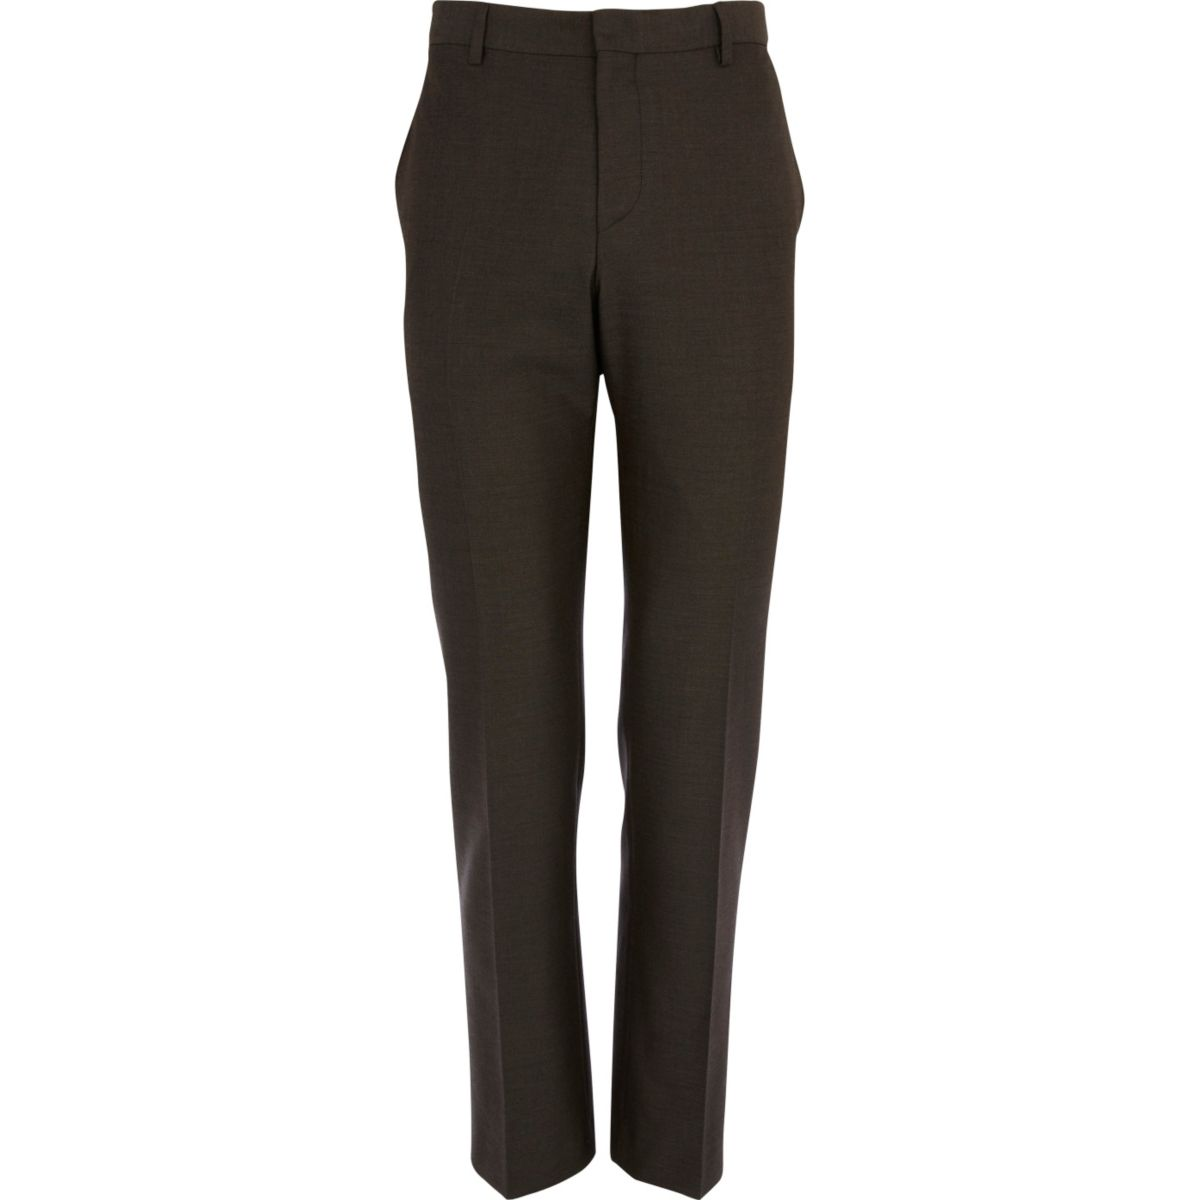 Light brown slim fit suit pants